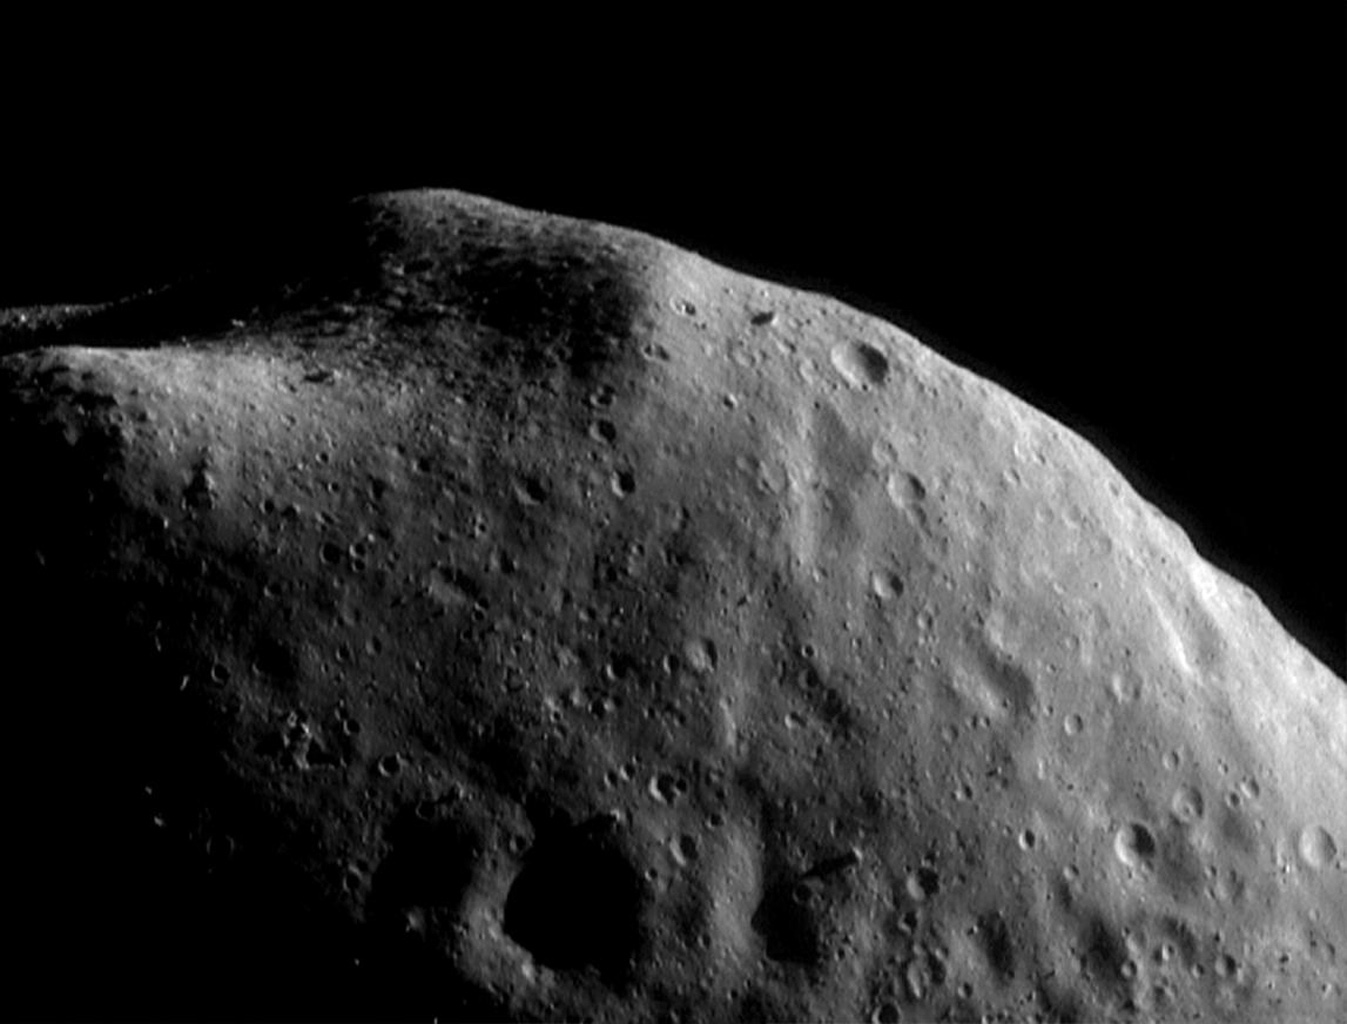 This image of asteroid Eros, taken by NASA's NEAR Shoemaker on Sept. 5, 2000, shows knobs sticking out of the surface near the top of the image surround a boulder-strewn area, robably remnants of ancient impact craters.